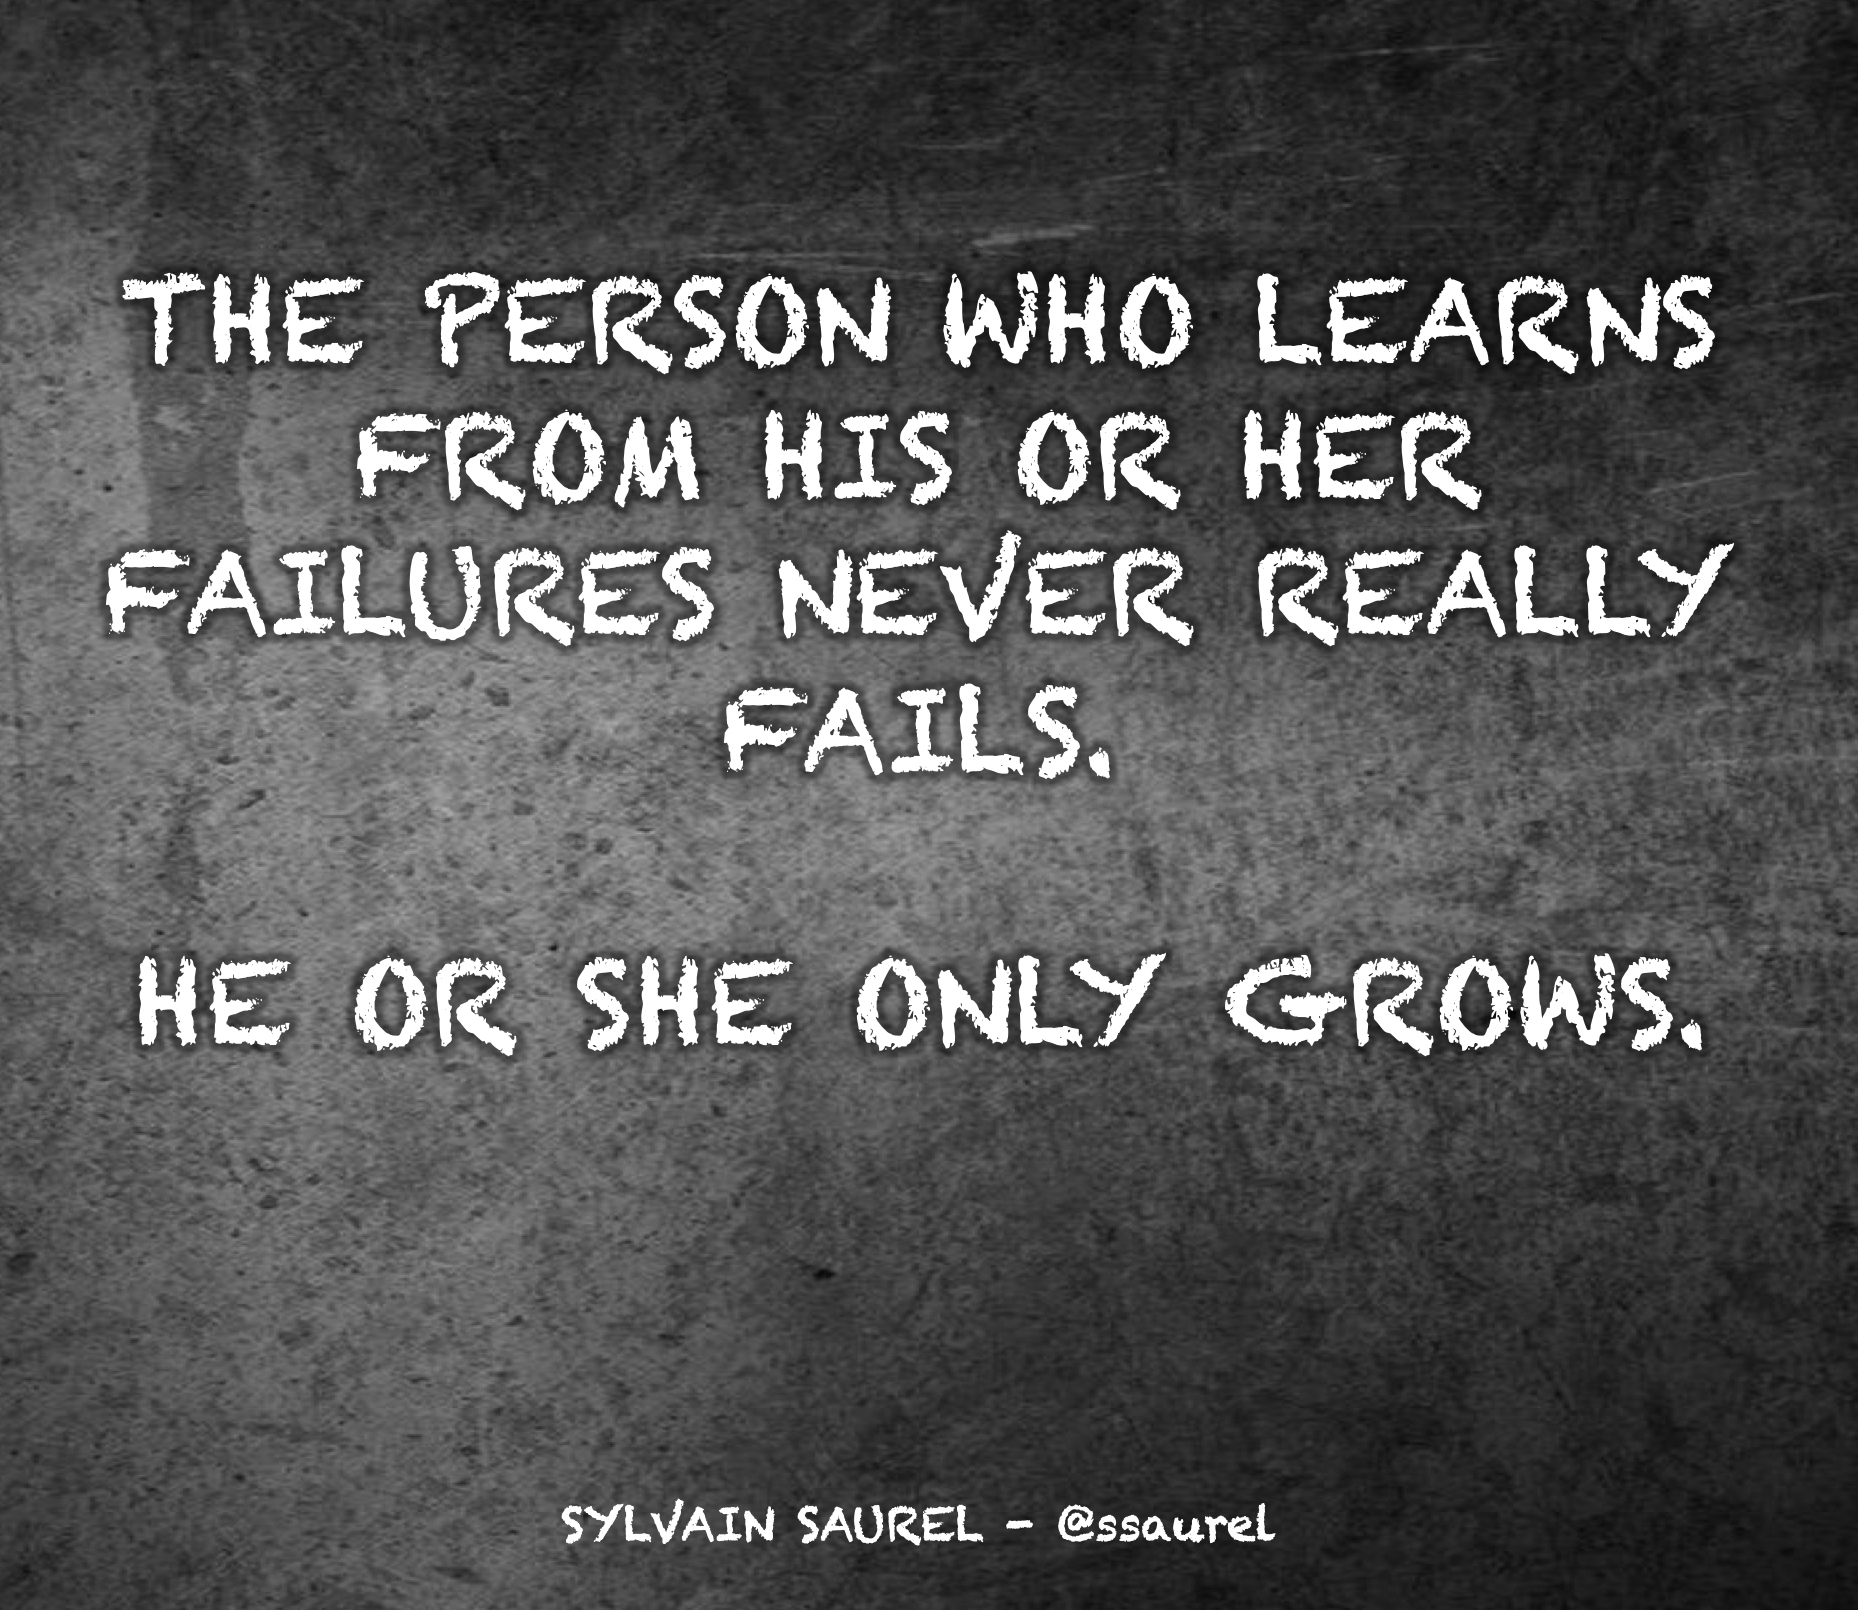 [Image] The person who learns from his or her failures never really fails. He or she only grows.